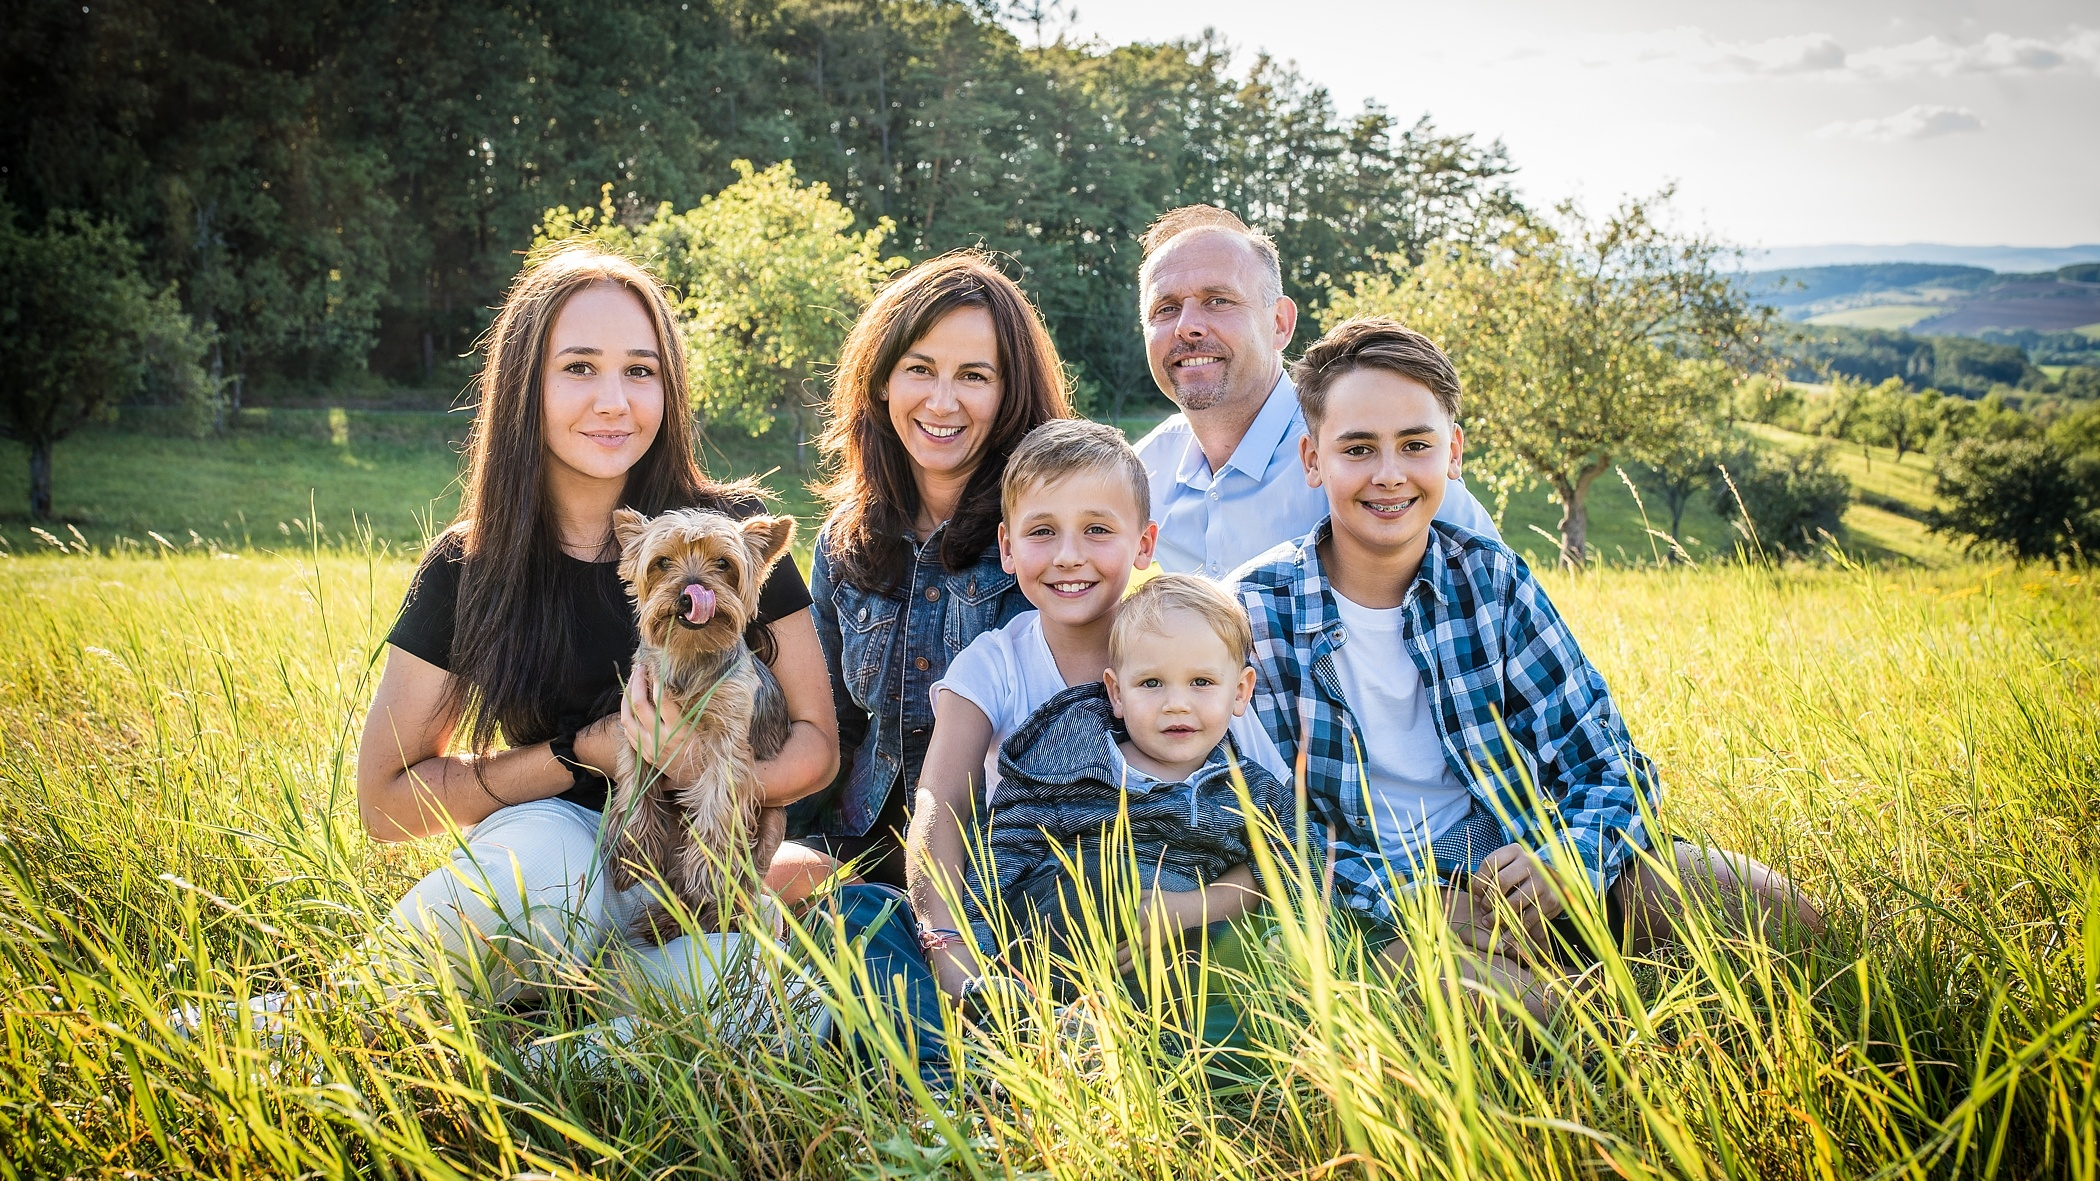 Photographing Families: Learn the Basics of Group Photography